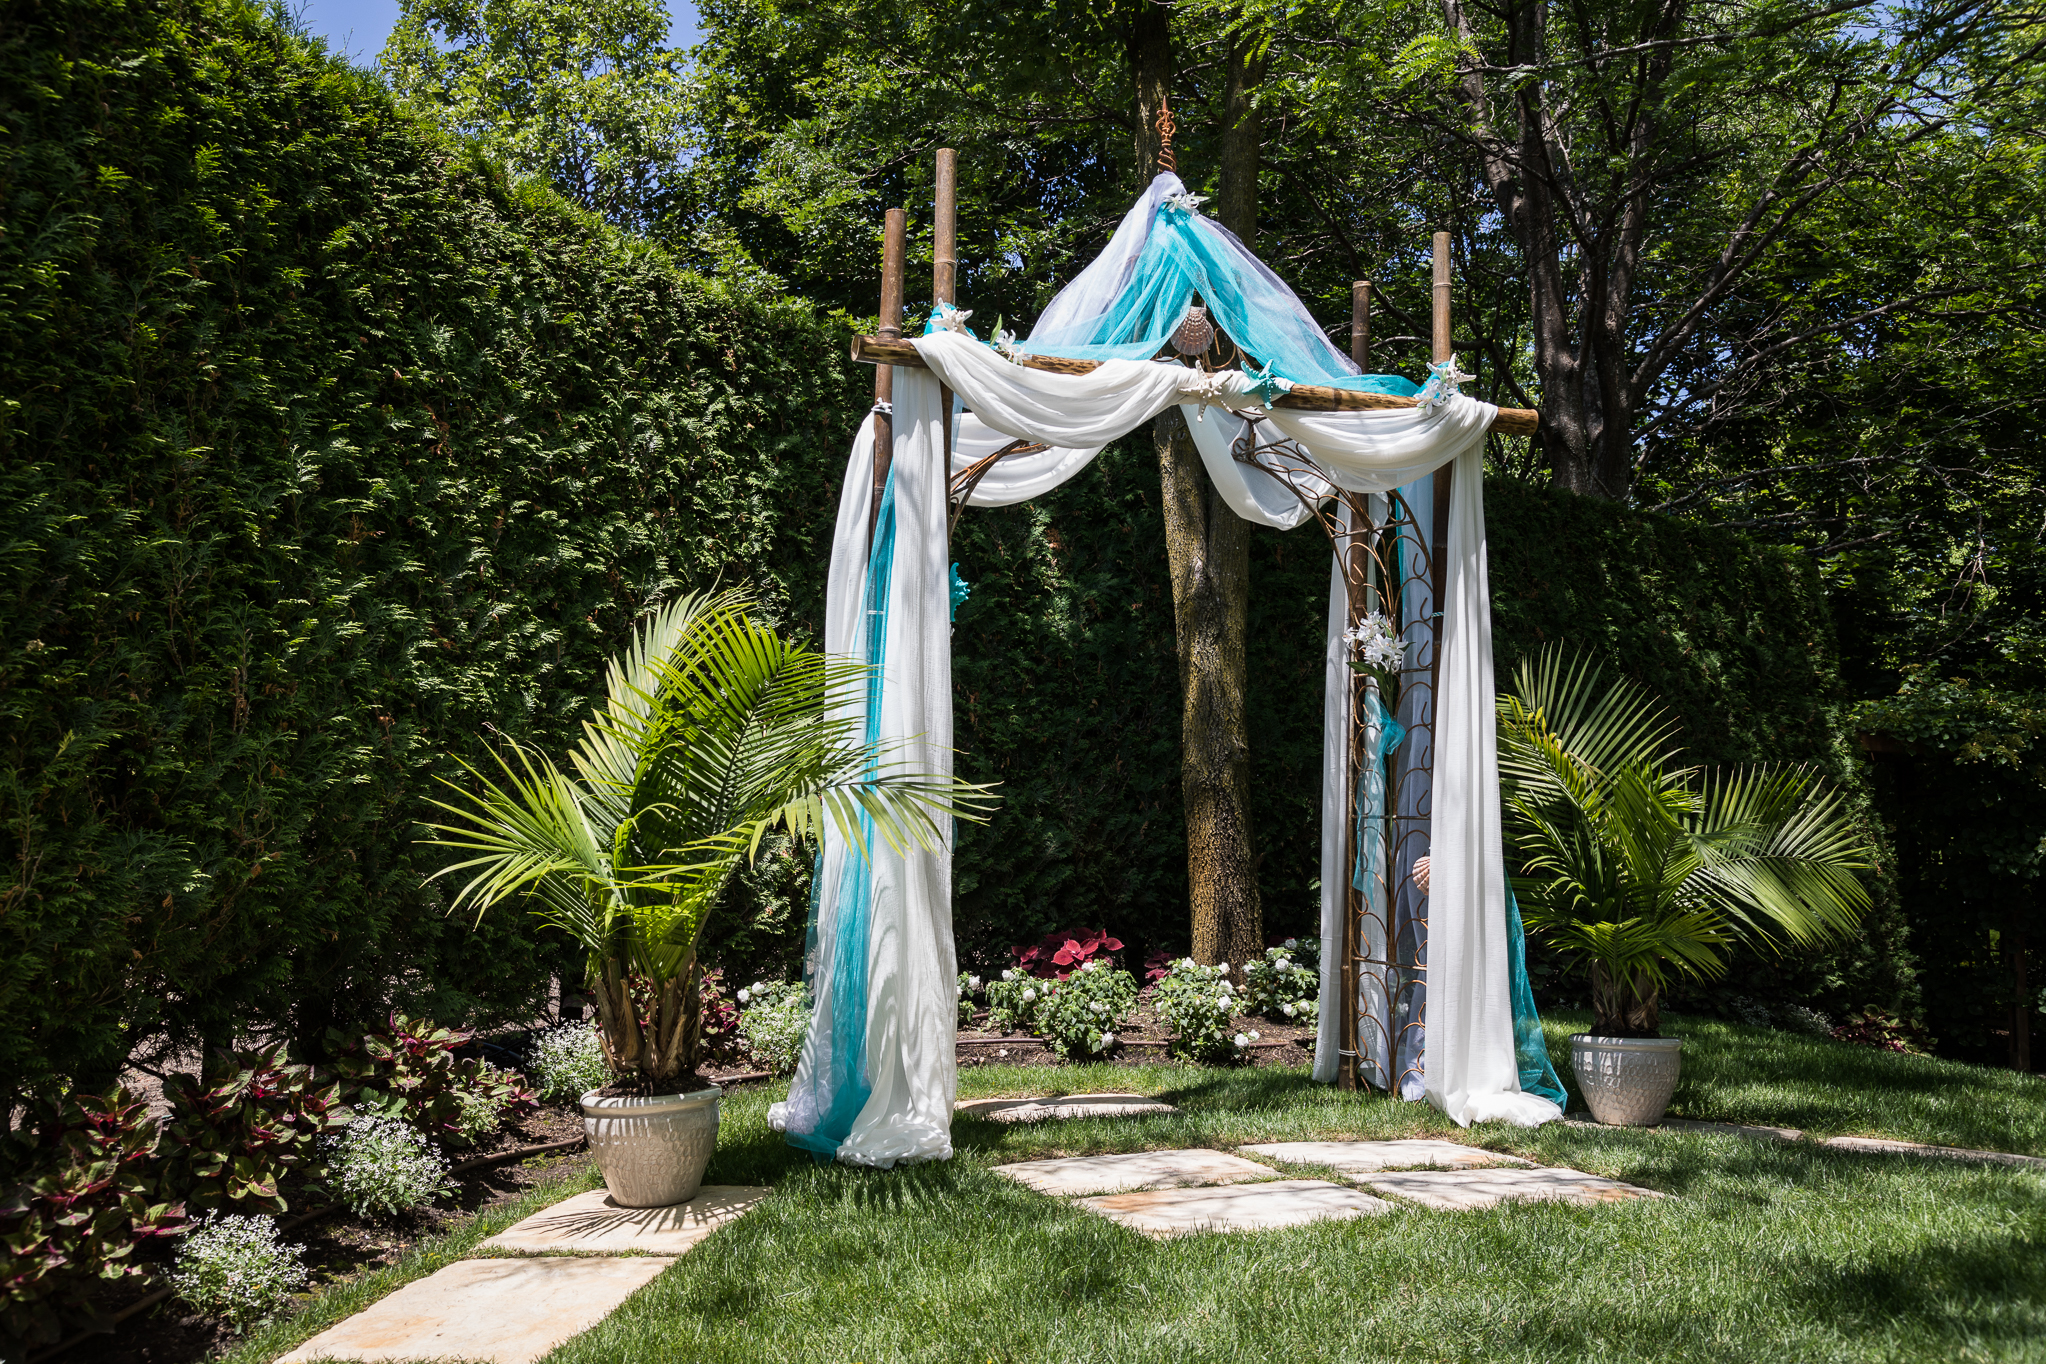 setup_wedding_08_05_17-1008.jpg